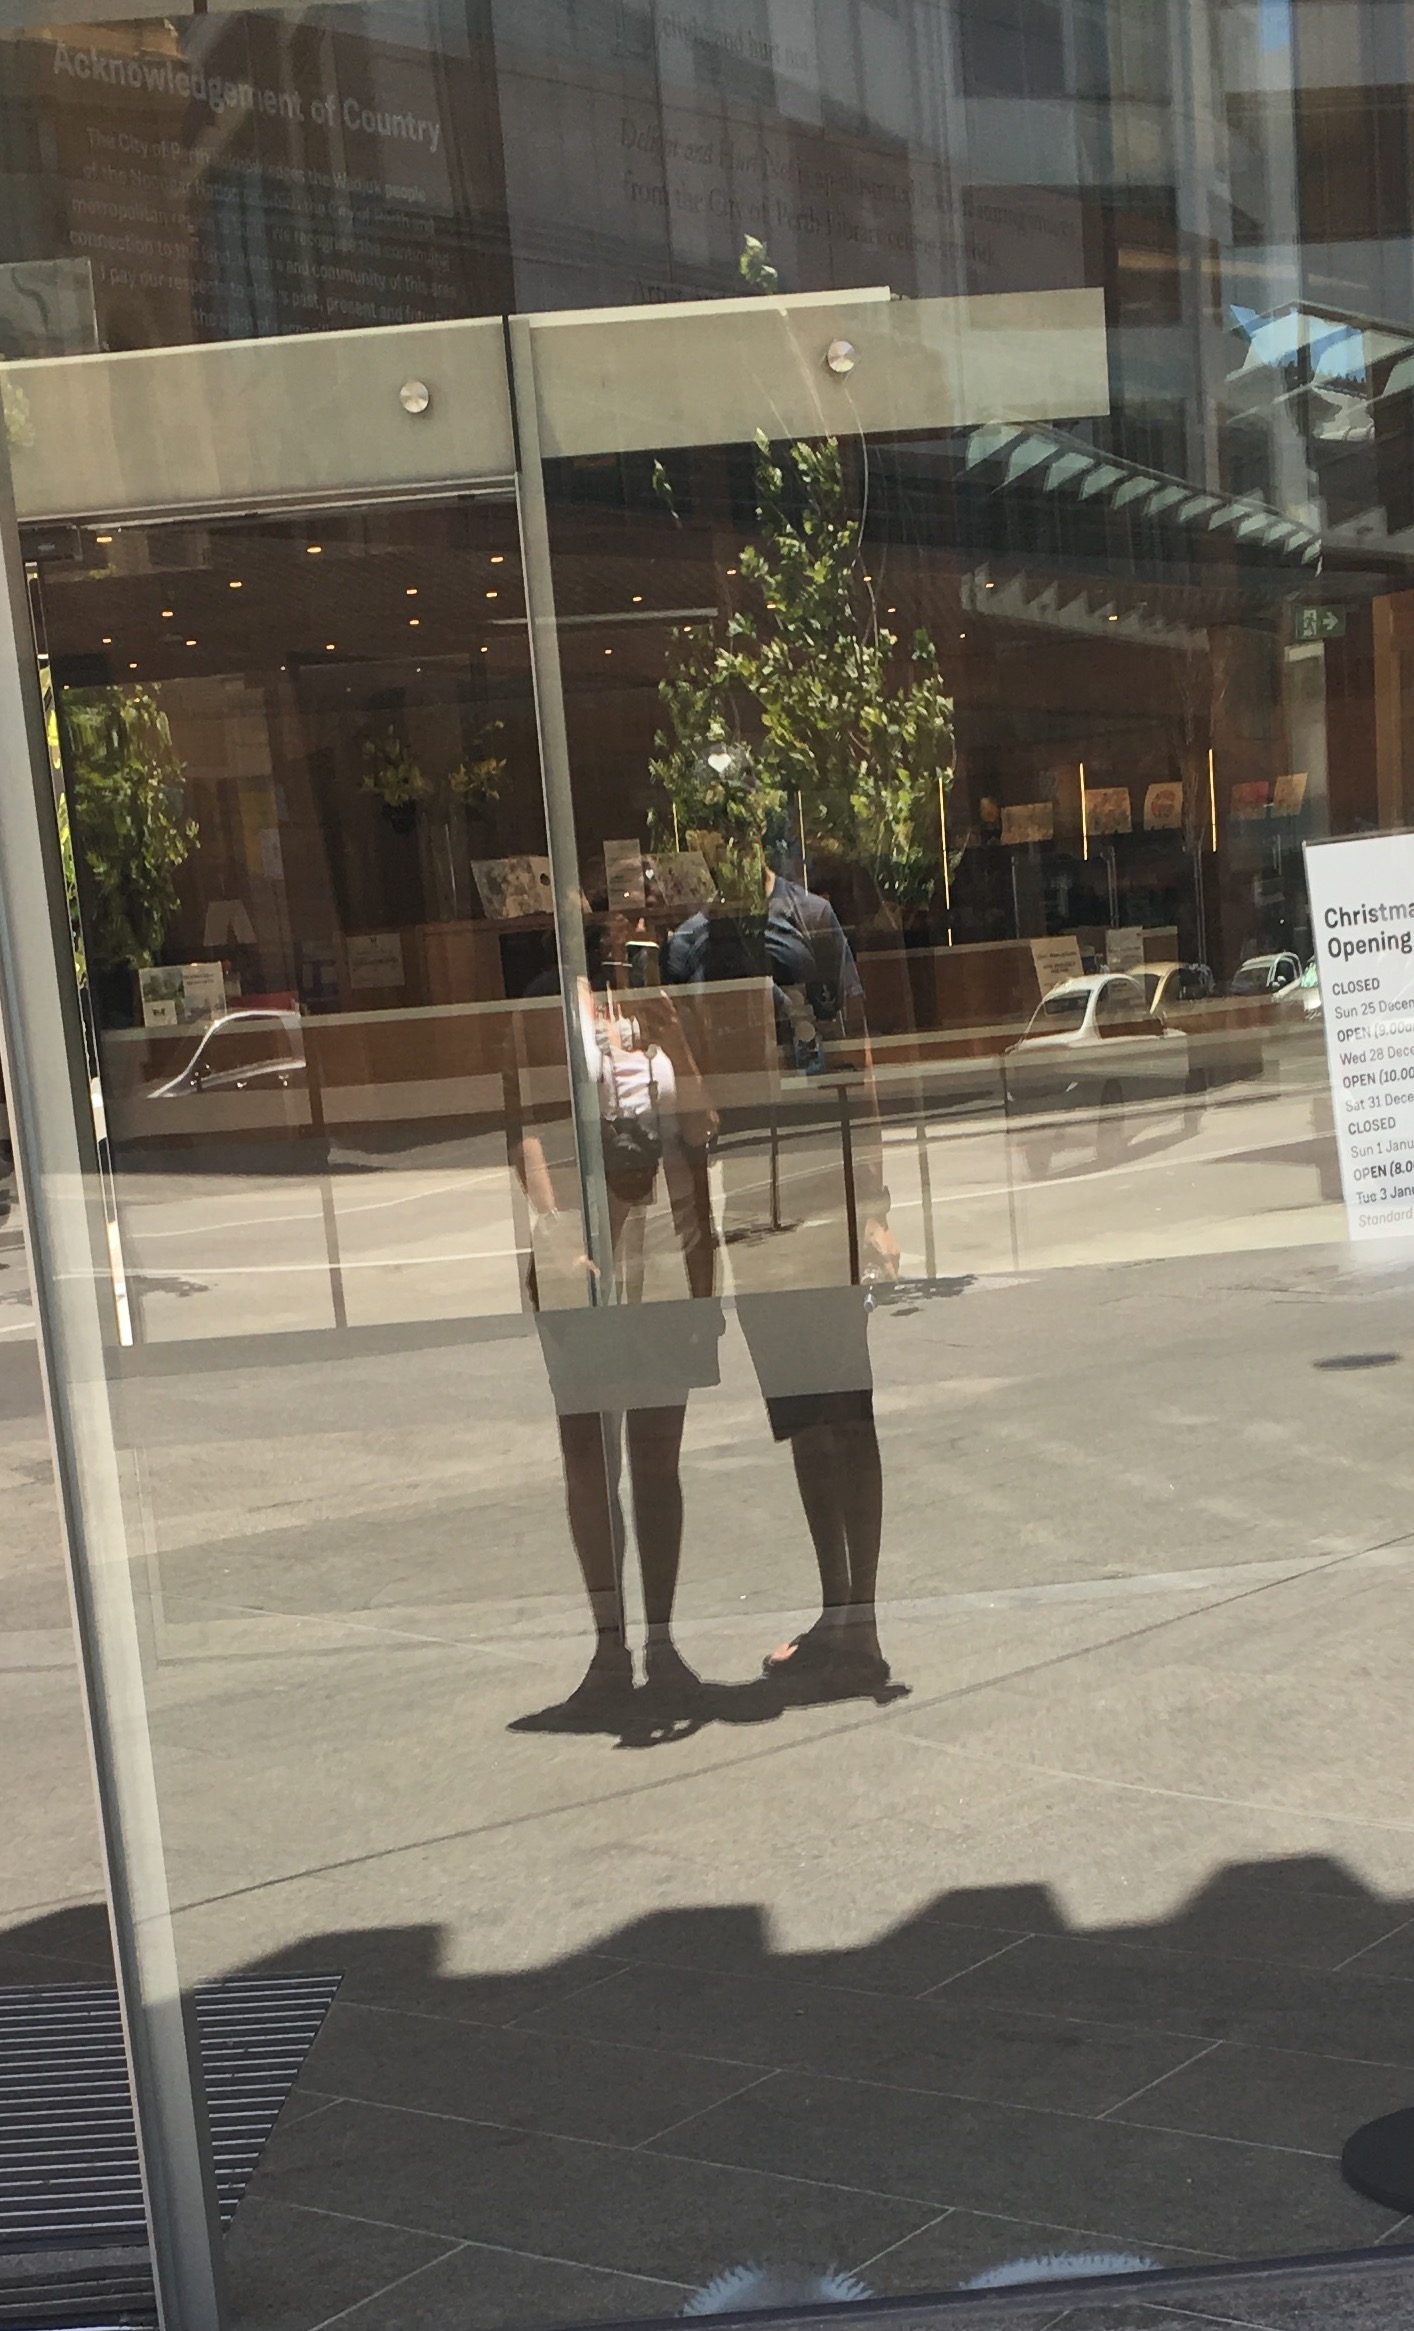 Our reflection in a shop window, Perth (we haven't got matching skirts on, honest!)